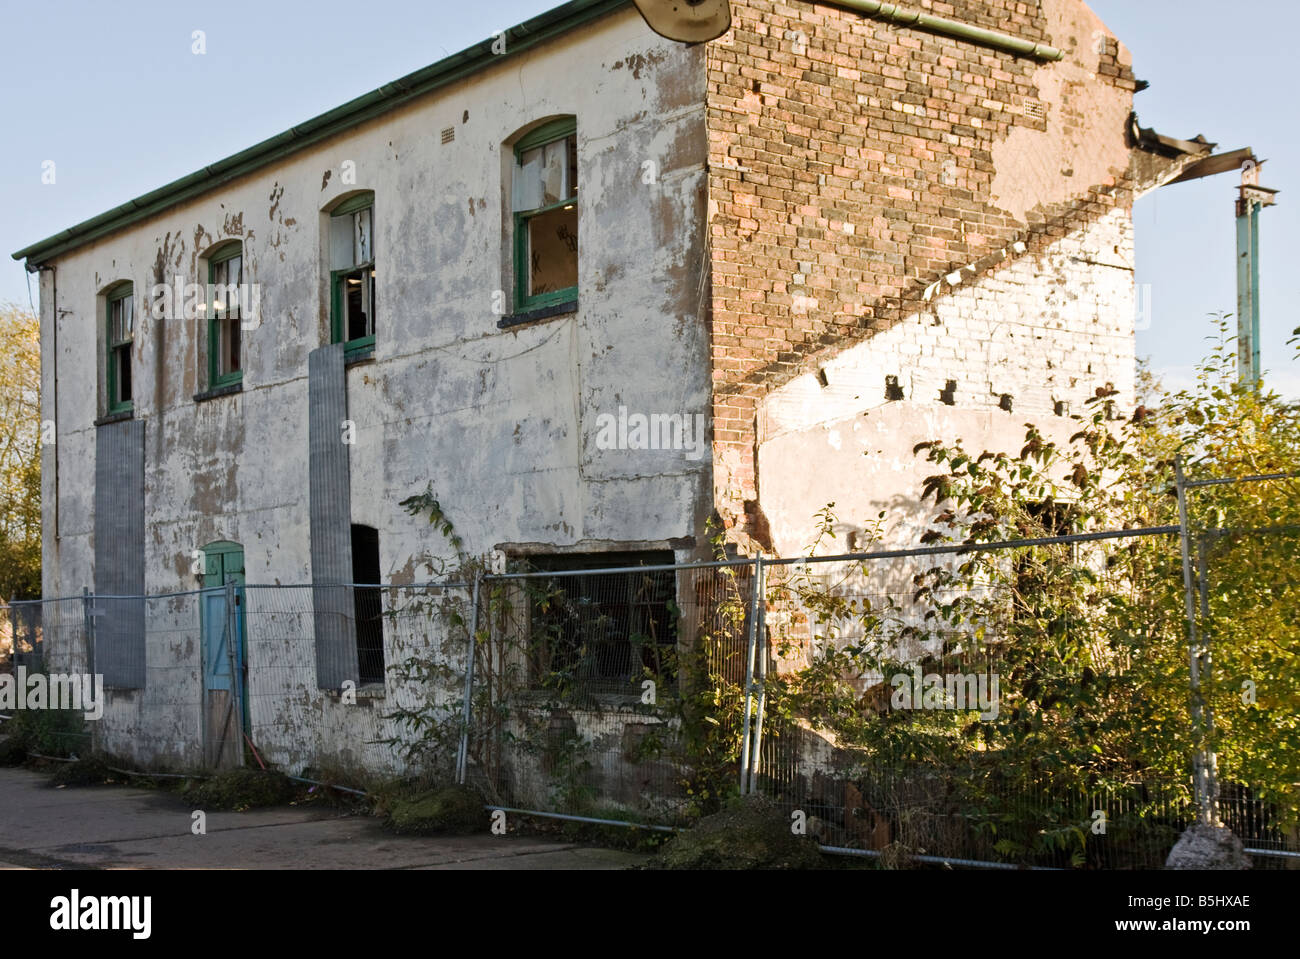 a dilapidated rundown disused old building - Stock Image